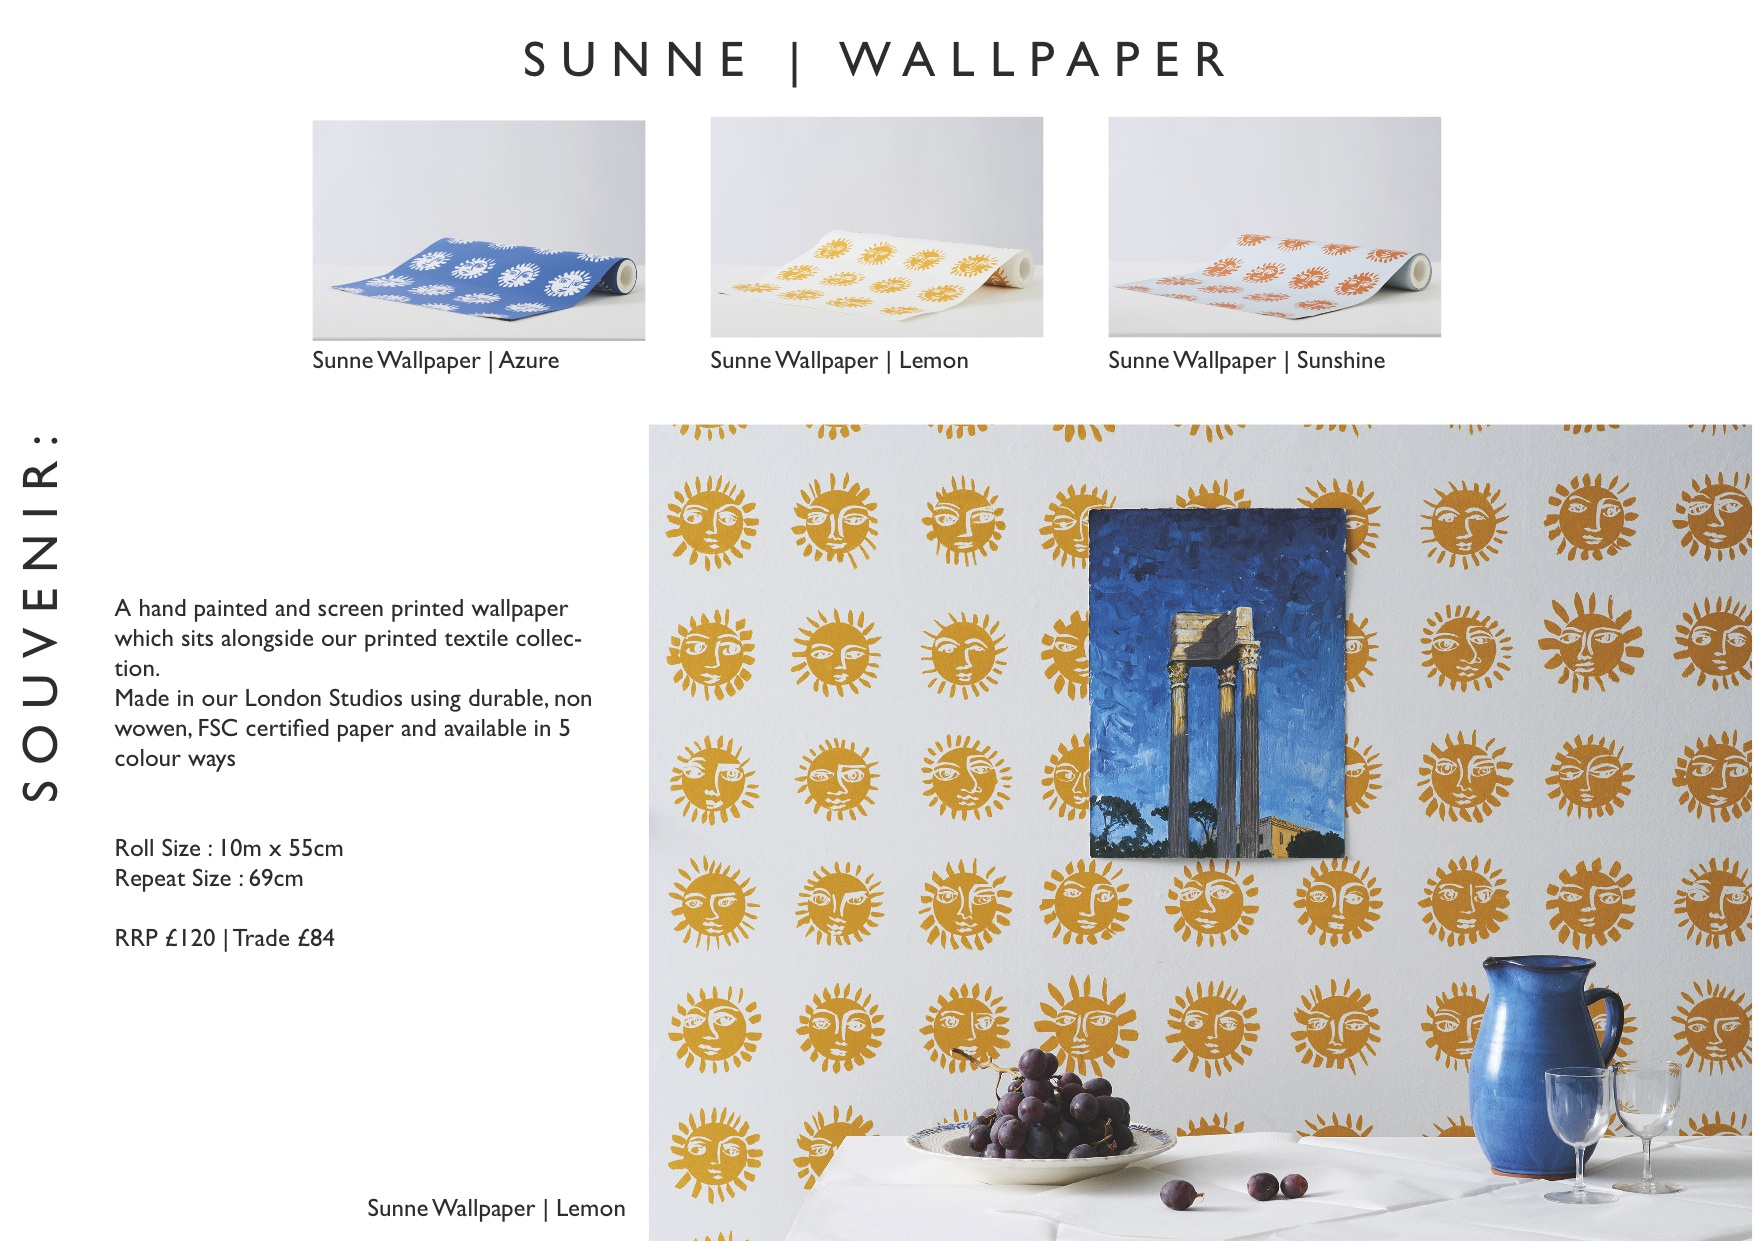 Trade Catalogue 2019 Sunne Wallpaper.jpg